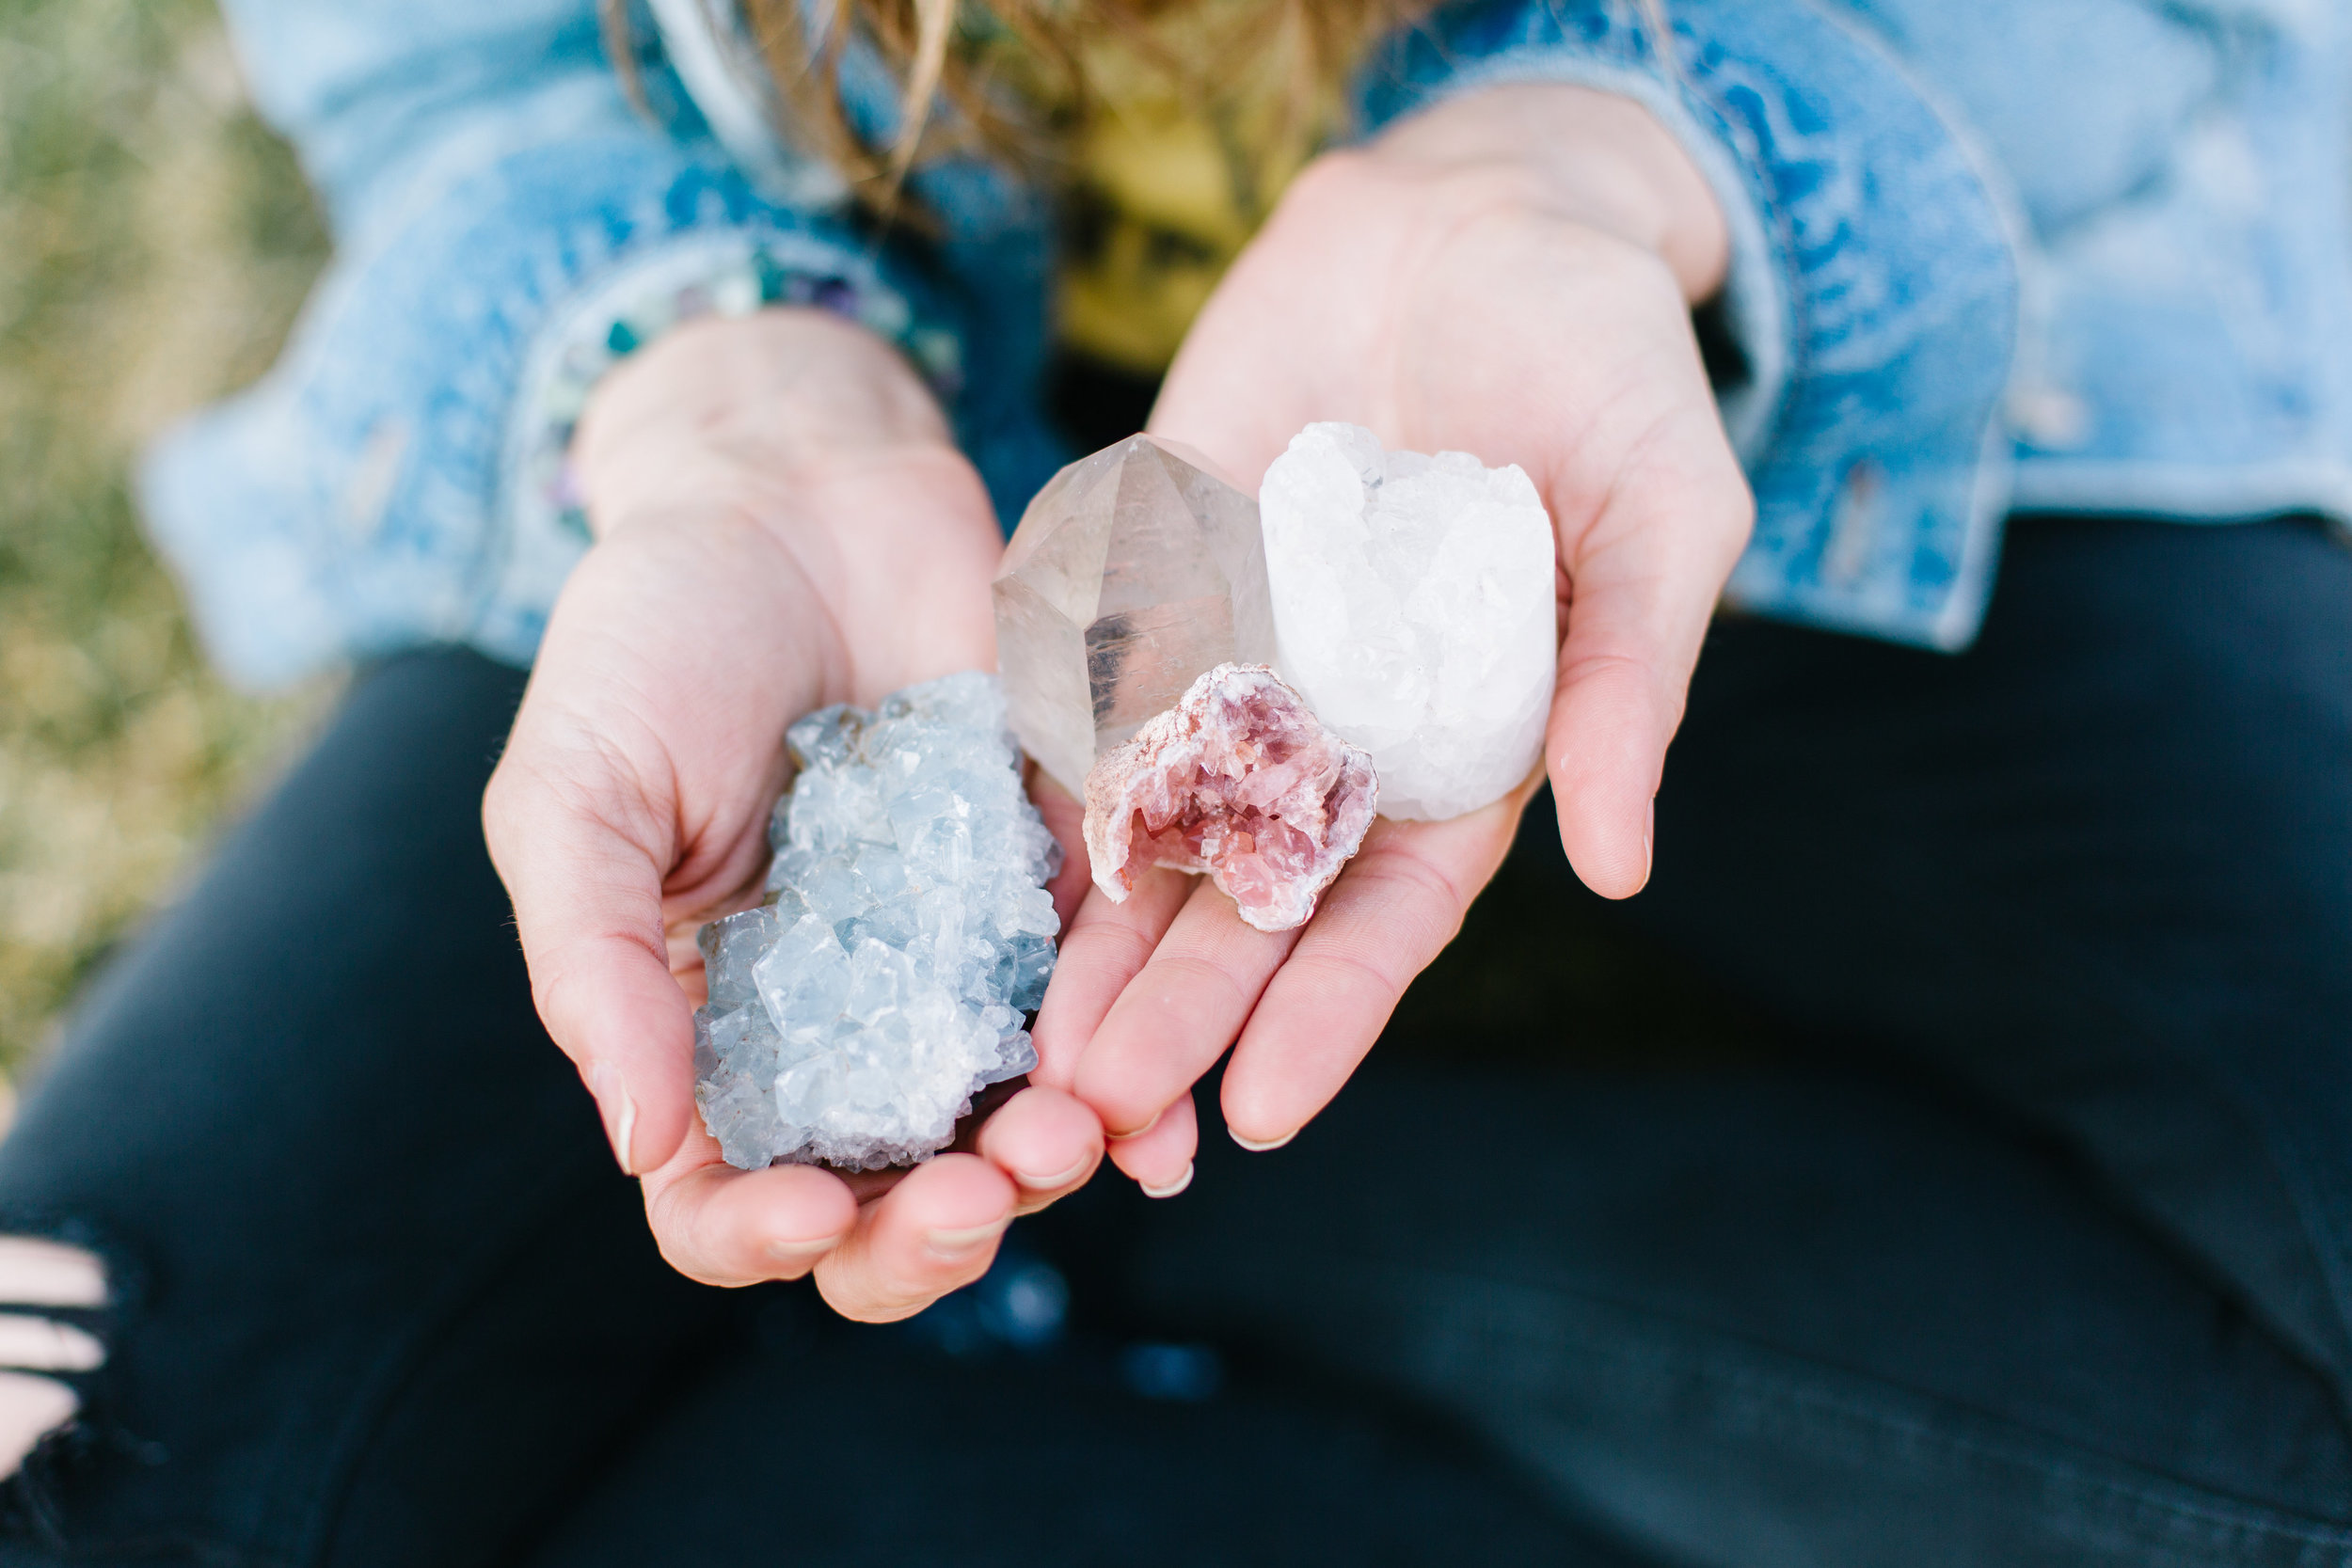 2. Crystal energy support - We believe in the power of vibrational energy. Each month we will share the benefits and creative ways to use a specific crystal. The consciously chosen crystal will support you with the intention of the month.